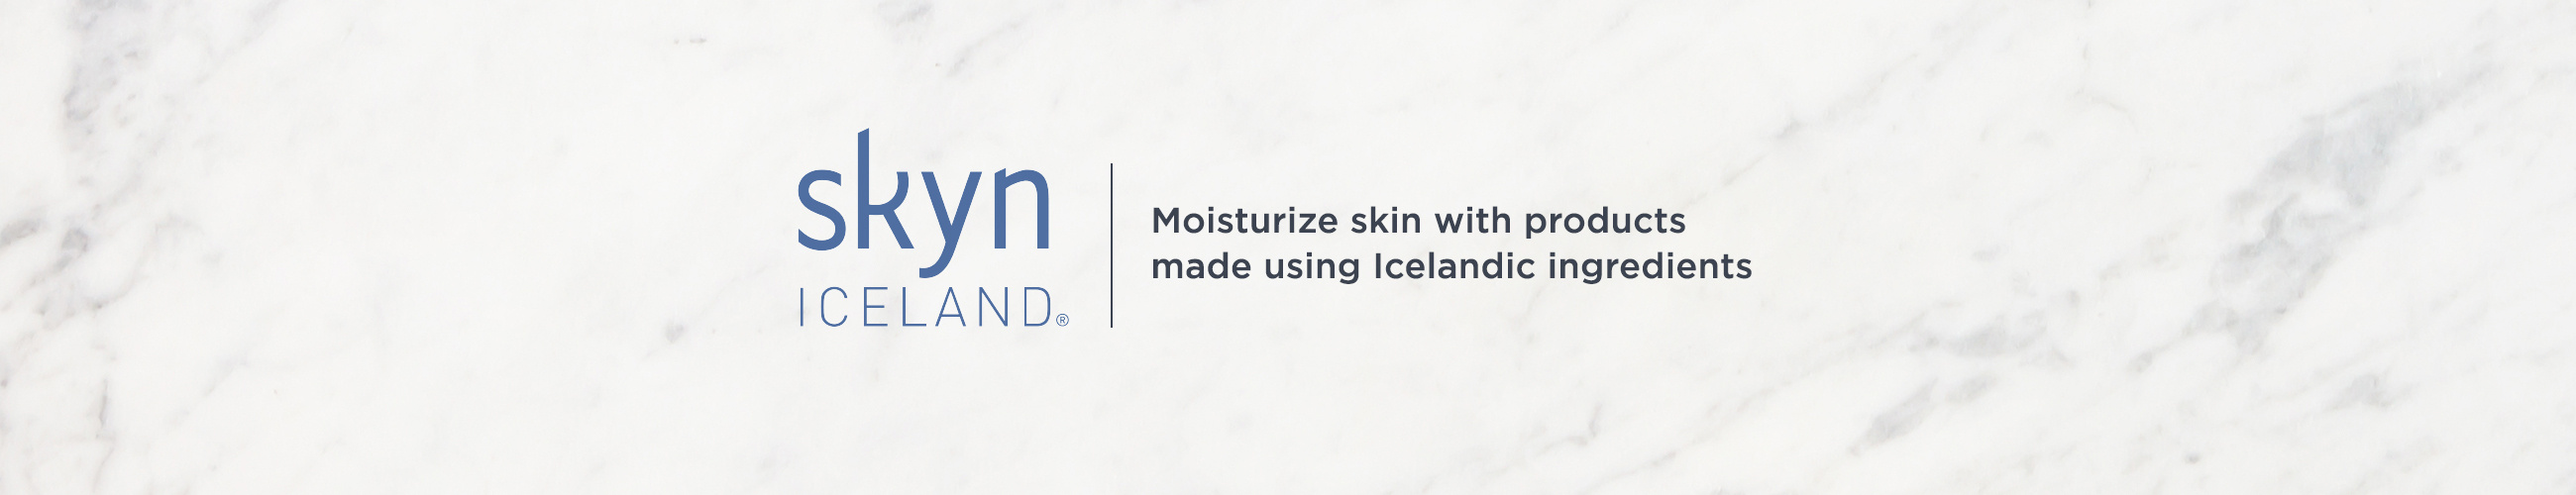 skyn ICELAND. Moisturize skin with products made using Icelandic ingredients